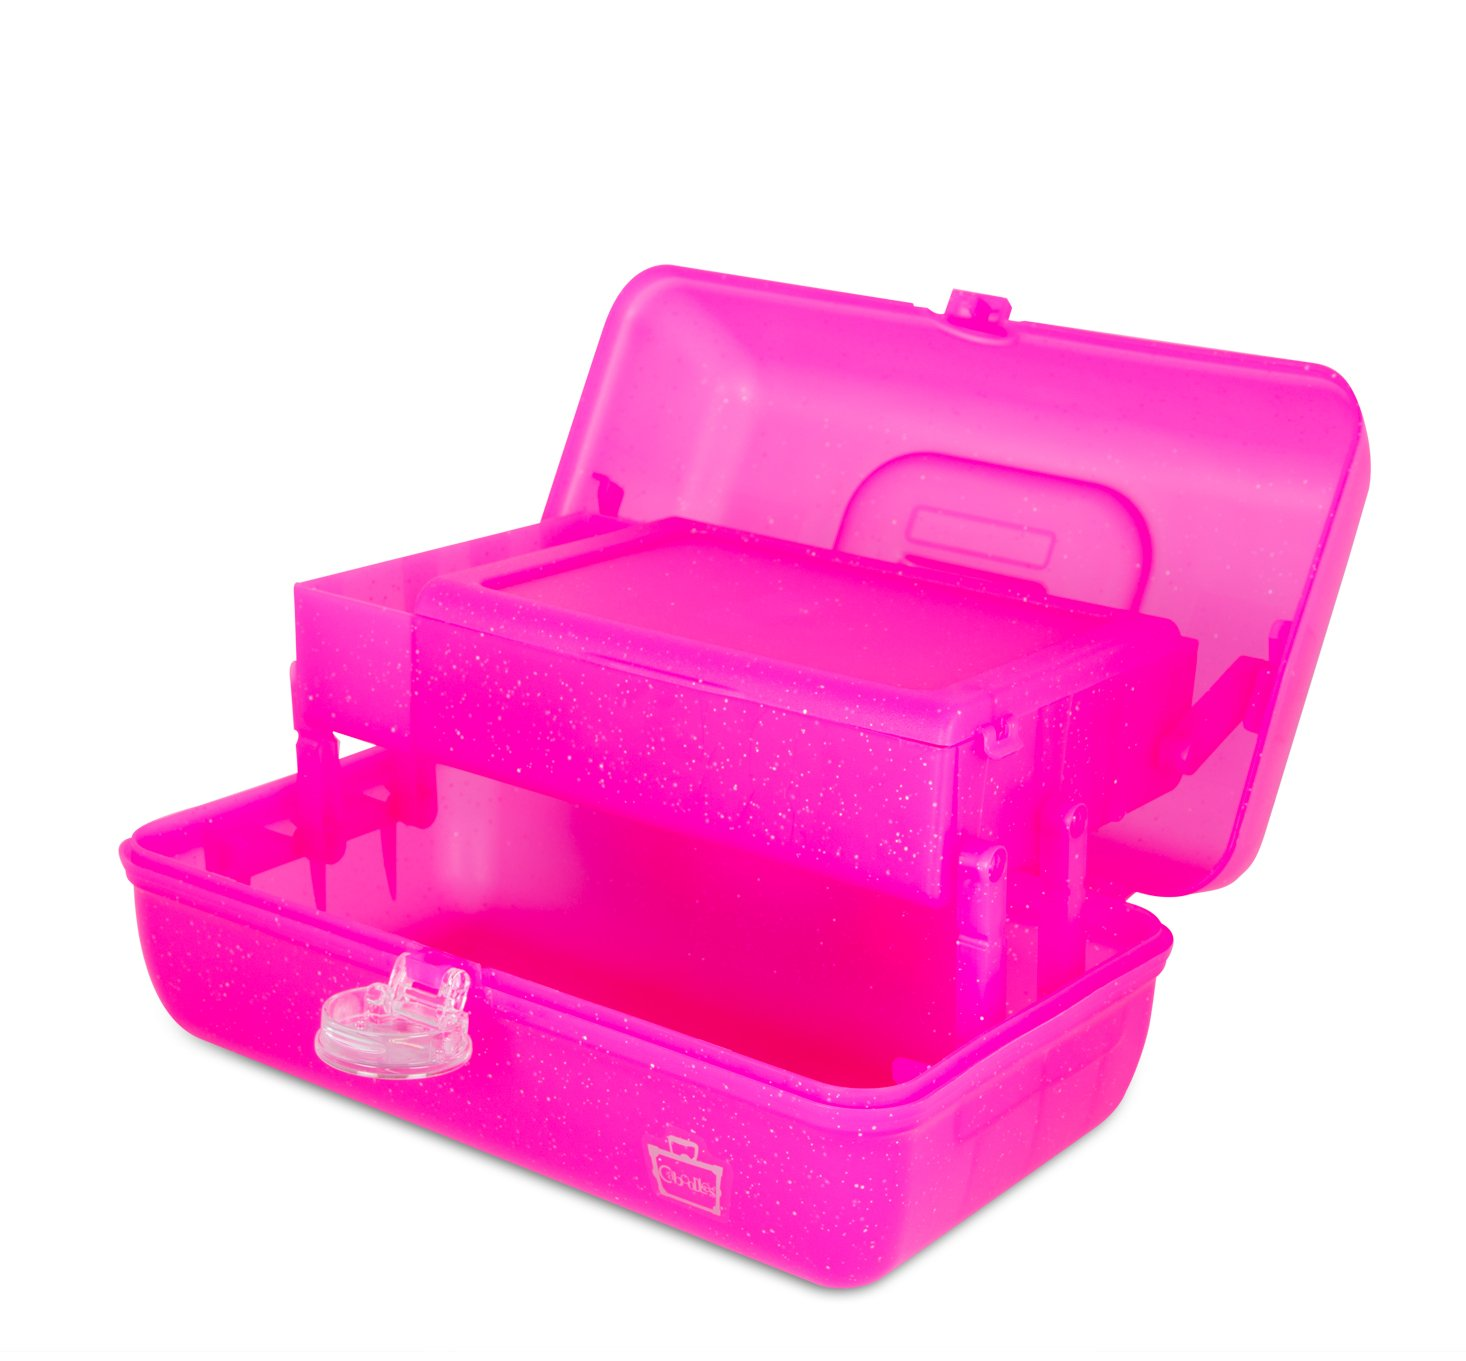 Caboodles On The Go Girl Classic Case, Pink Sparkle, 2.4 Pound by Caboodles (Image #3)